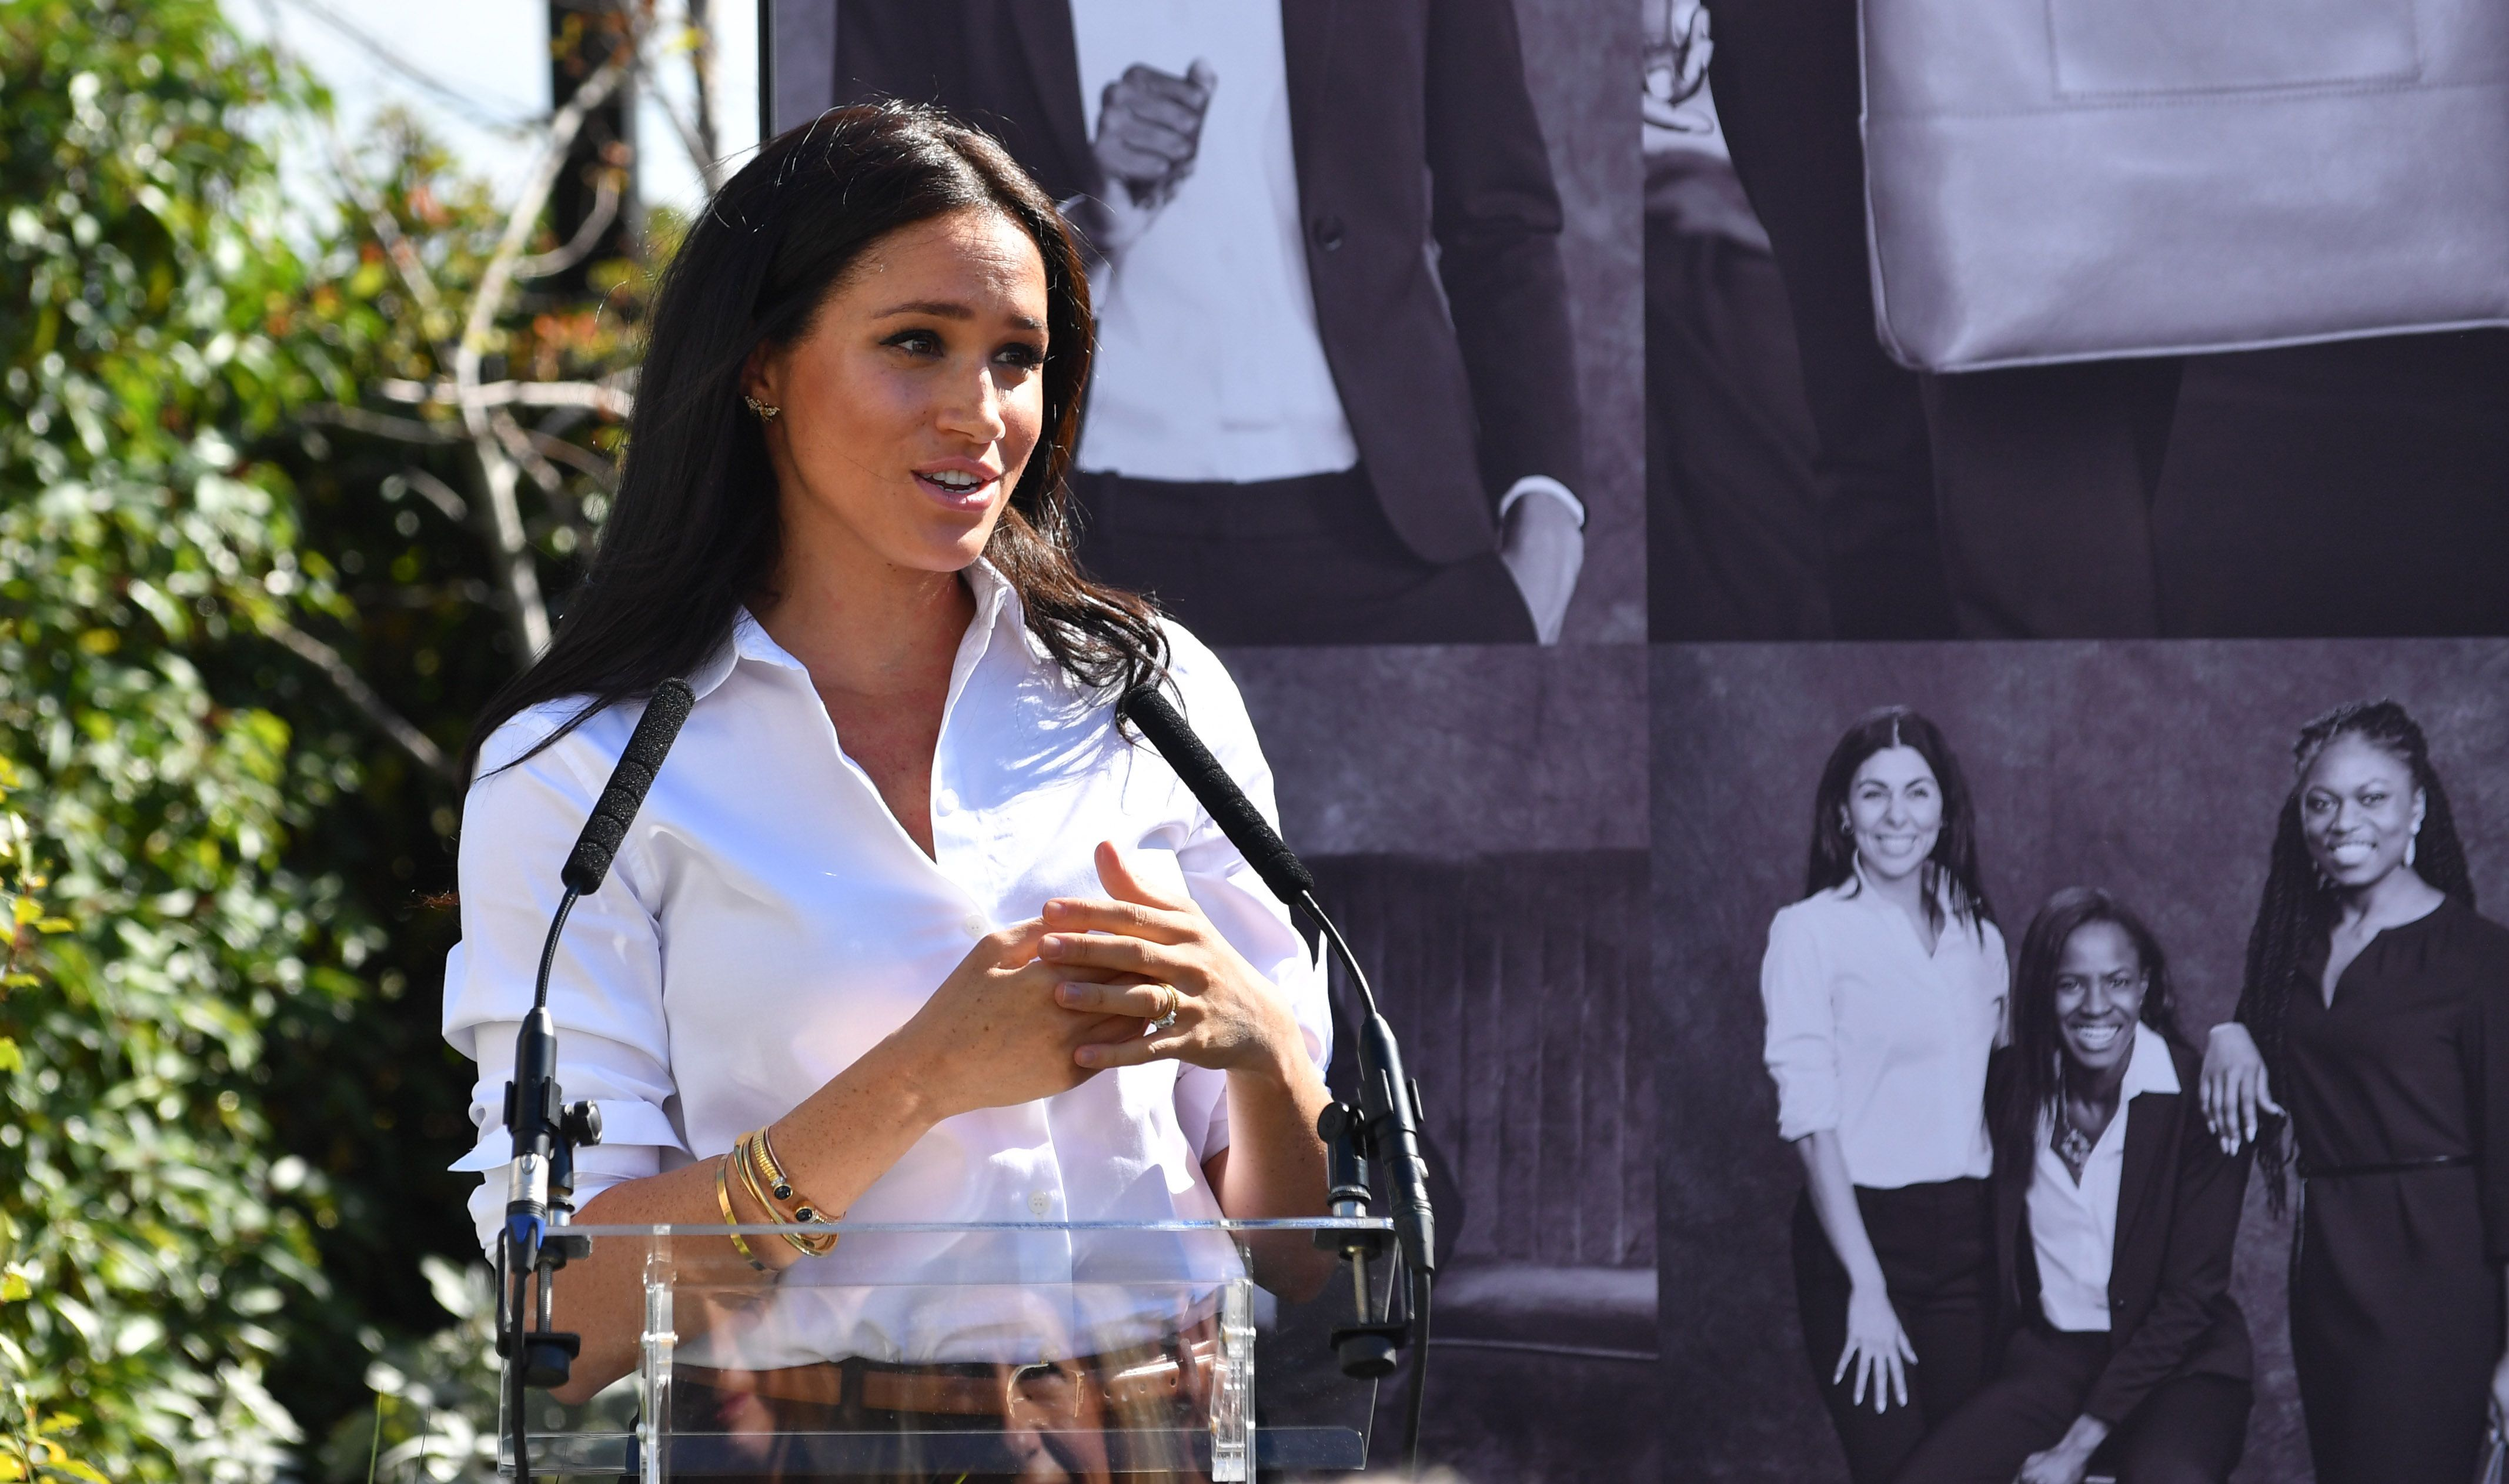 Inside the Launch of Meghan Markle's New Fashion Collection with Smart Works